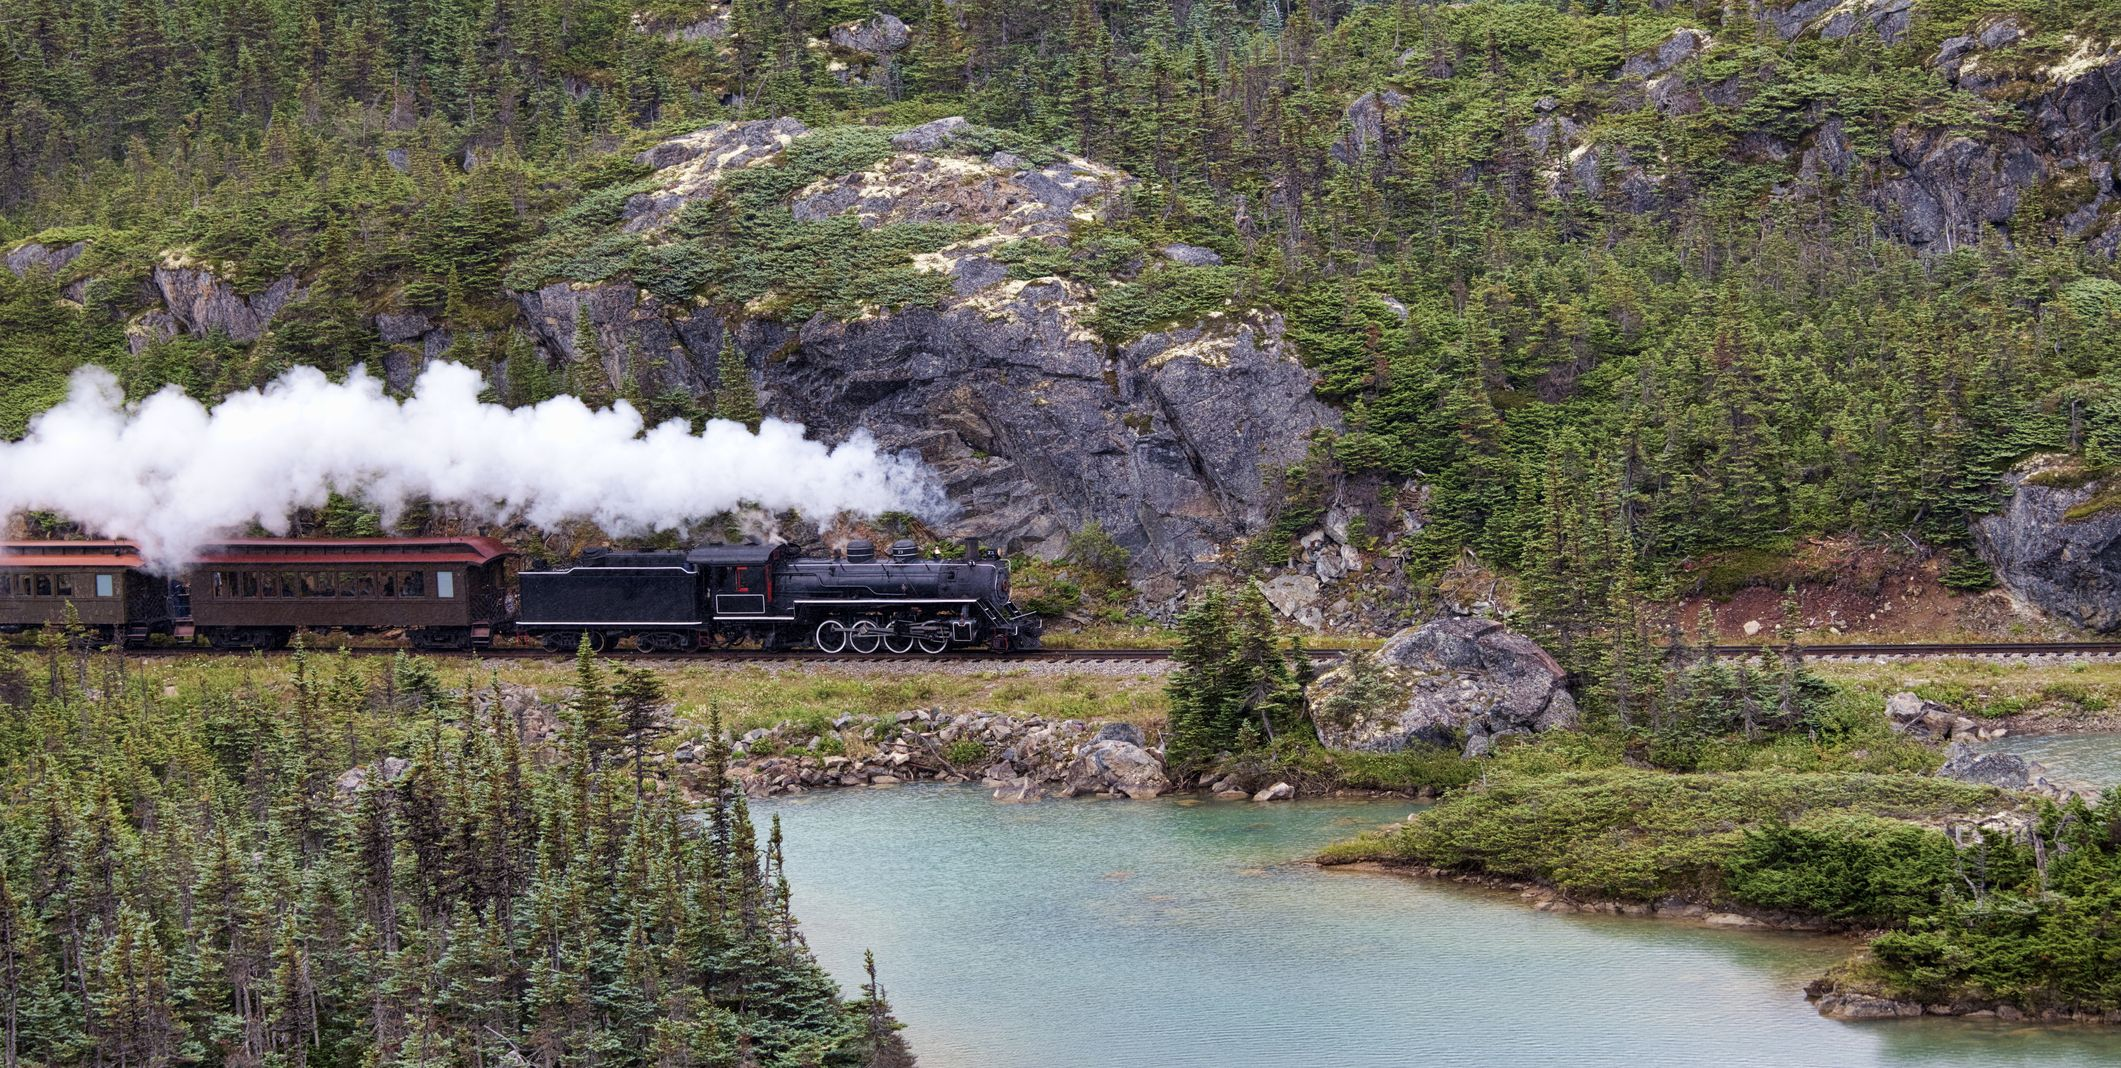 These Are the 12 Most Scenic Train Rides in the U.S.